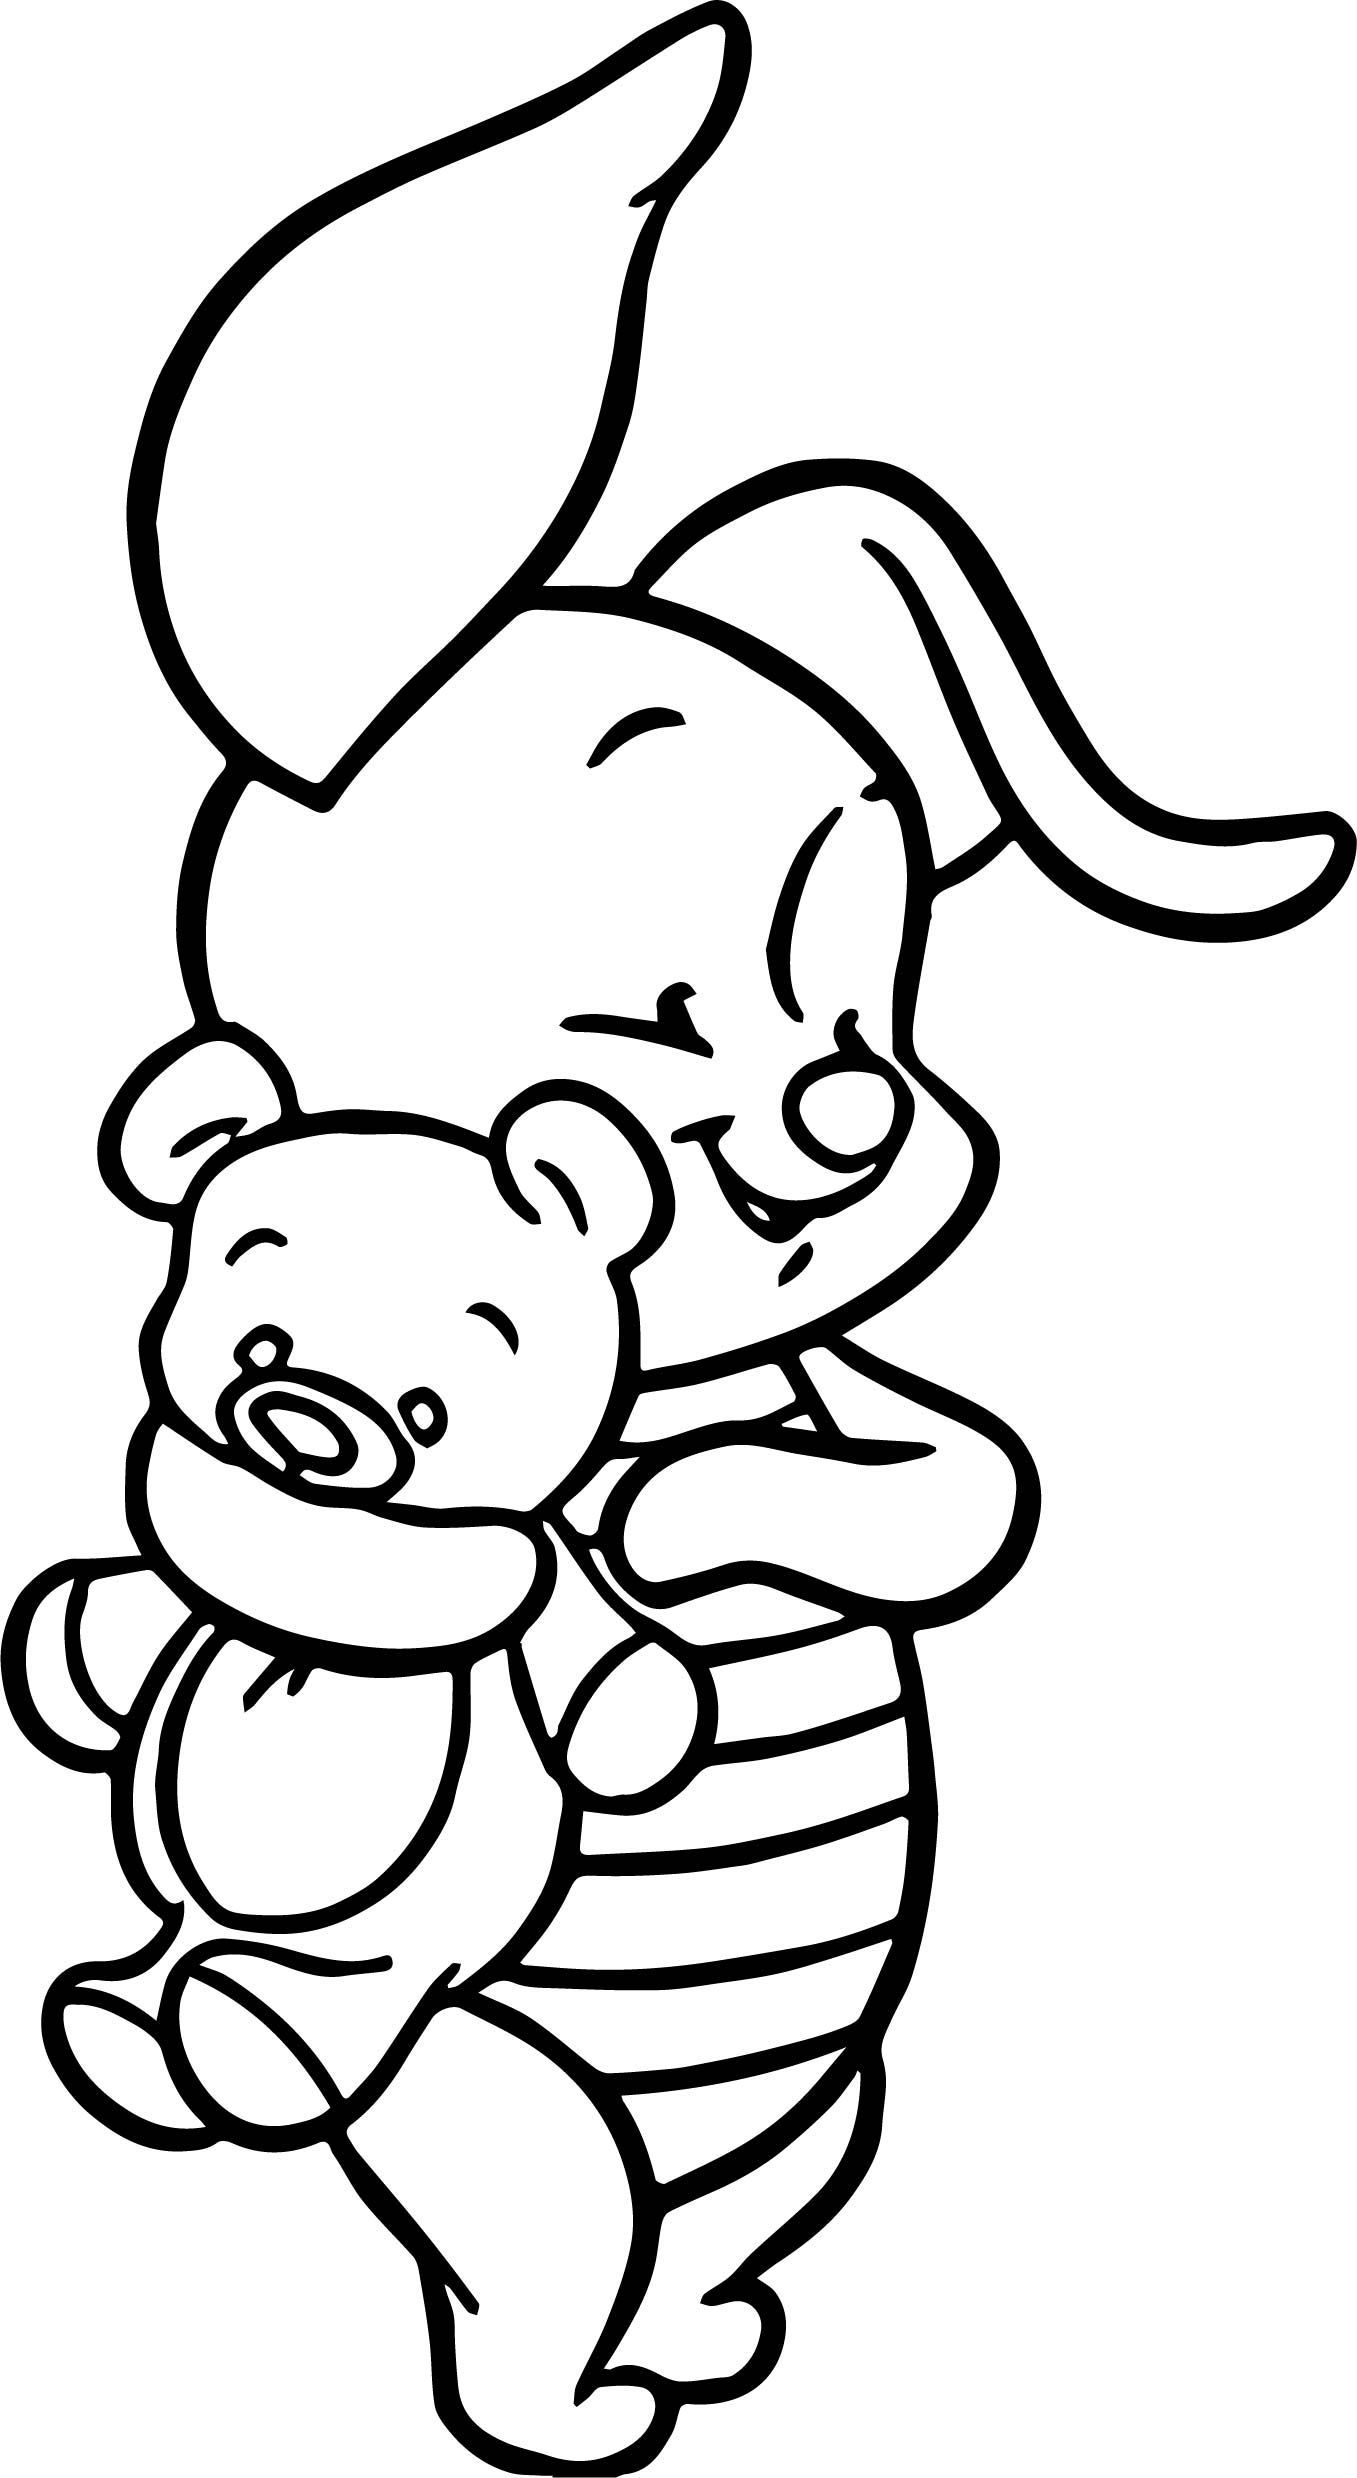 Coloring Rocks Beartoy Baby Piglet Coloring Page In 2020 Baby Coloring Pages Cartoon Coloring Pages Disney Coloring Pages